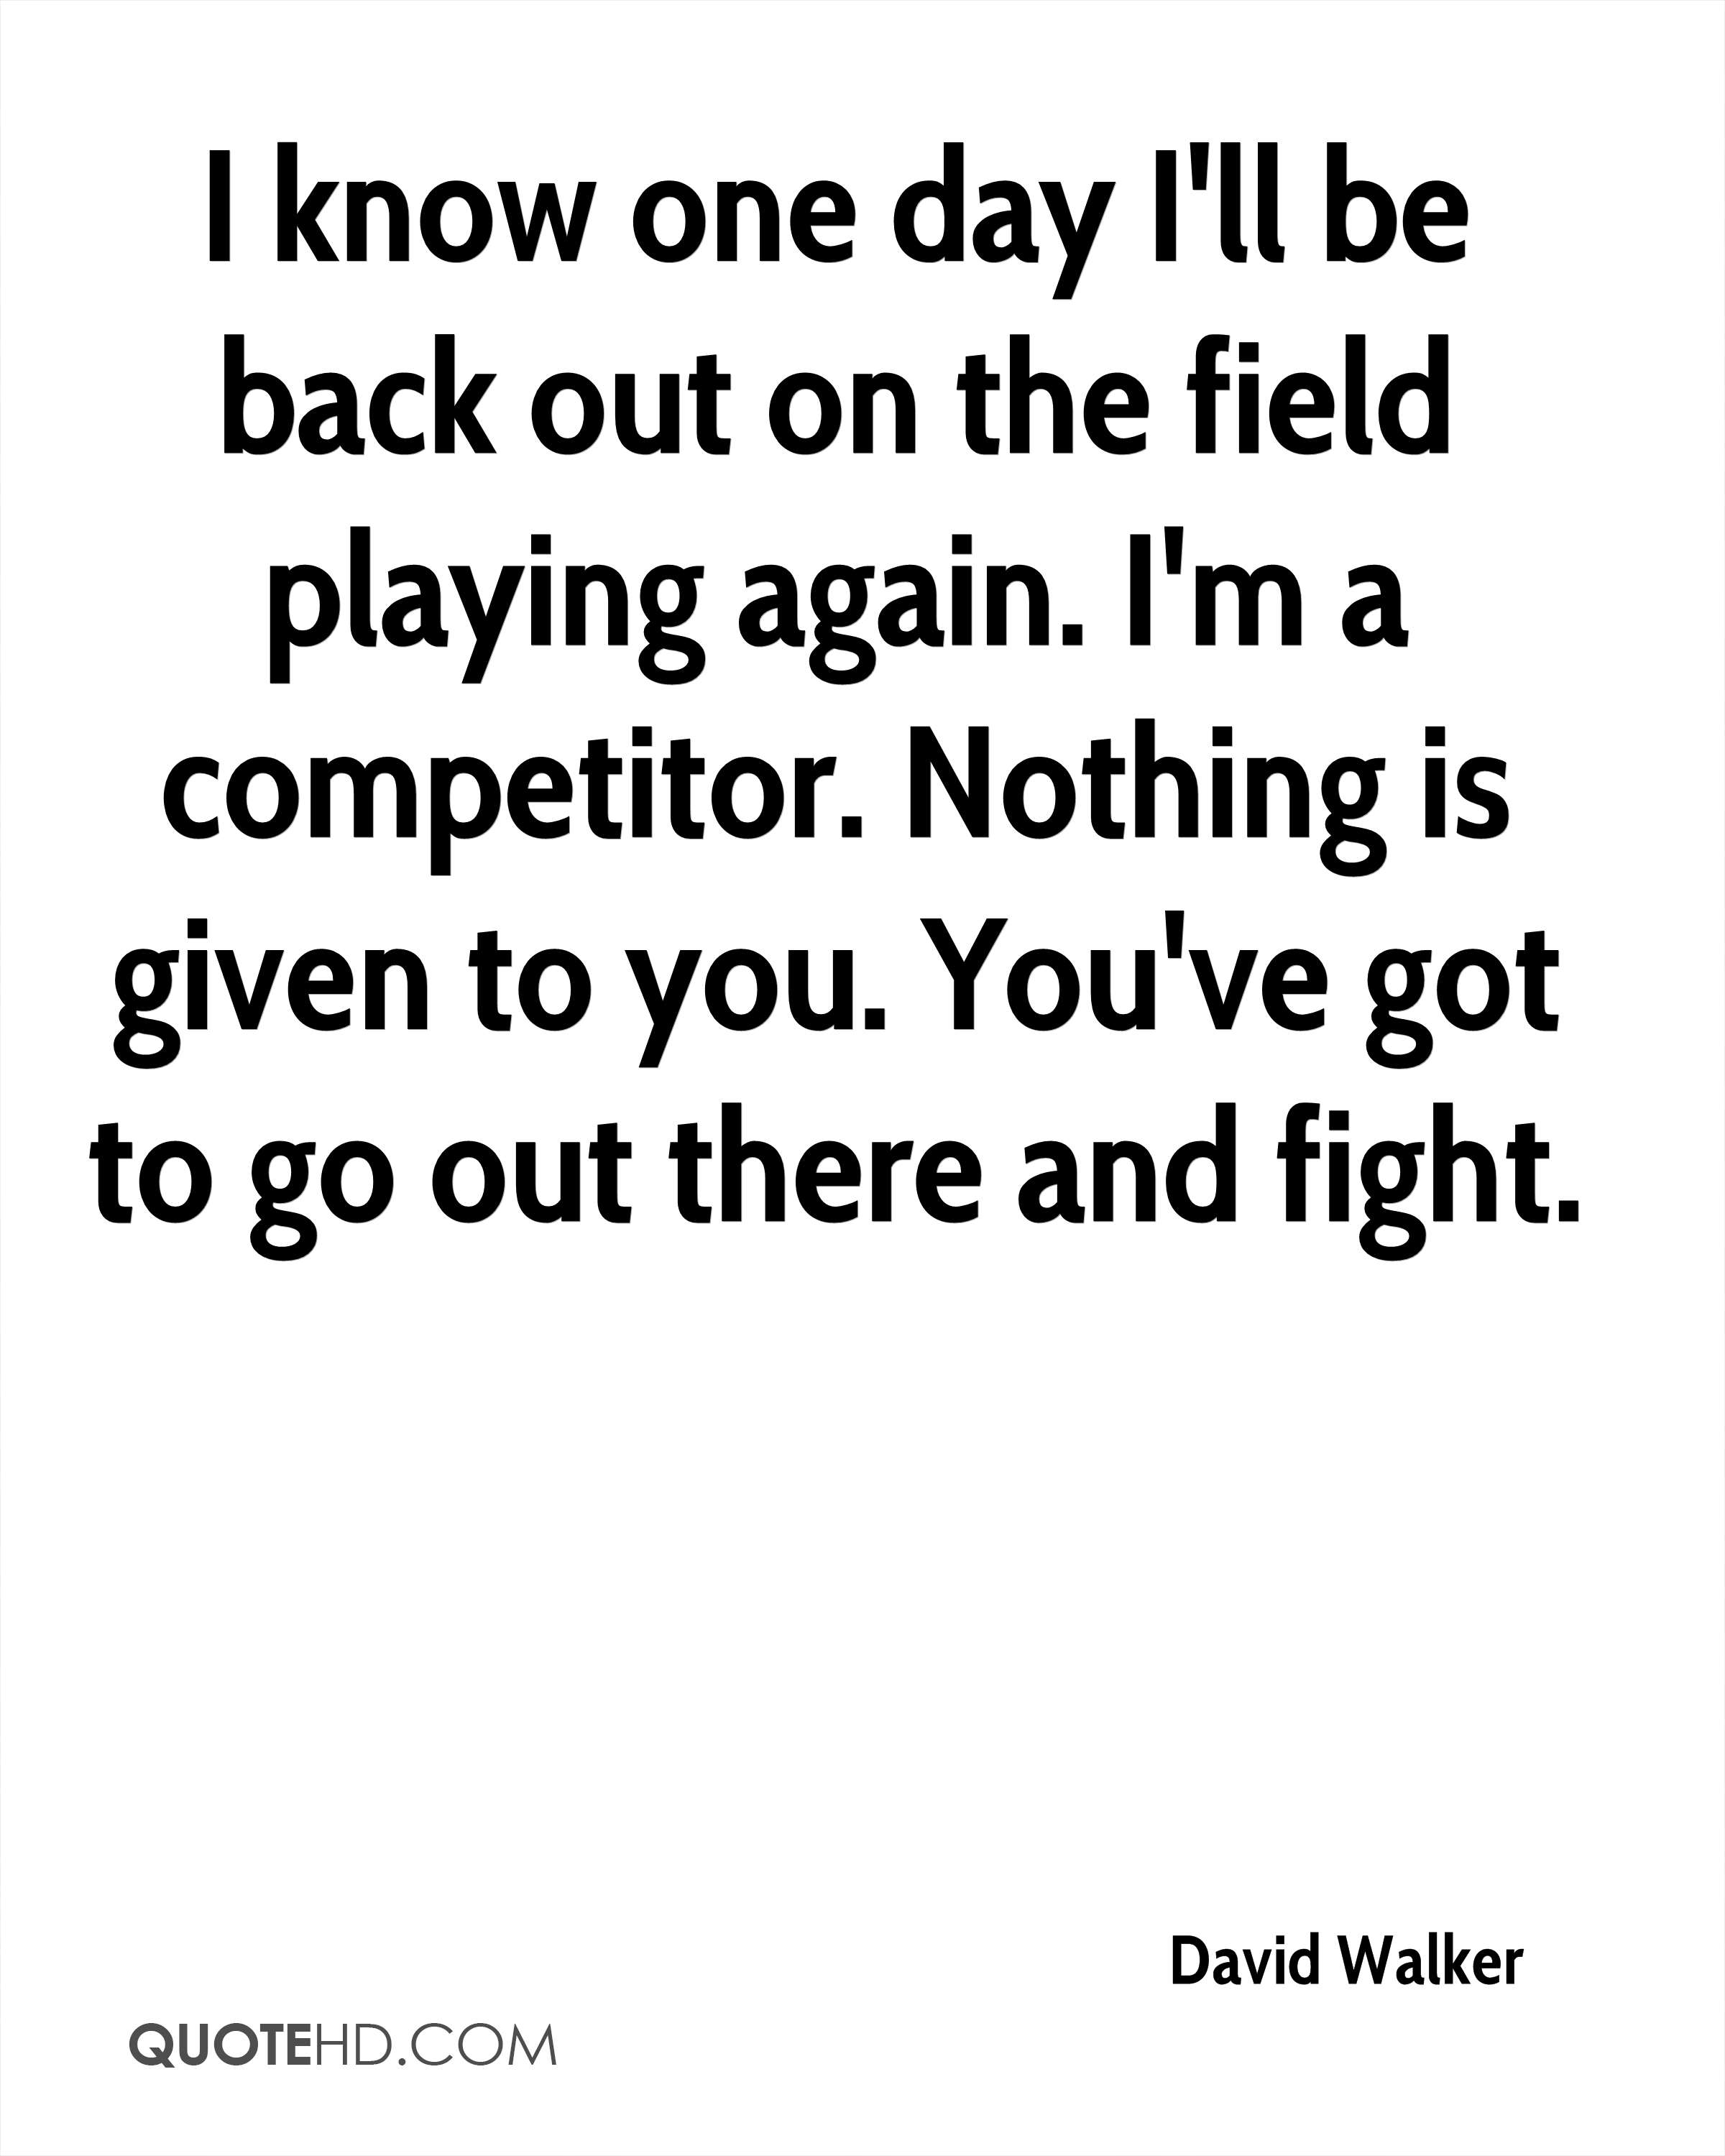 I know one day I'll be back out on the field playing again. I'm a competitor. Nothing is given to you. You've got to go out there and fight.